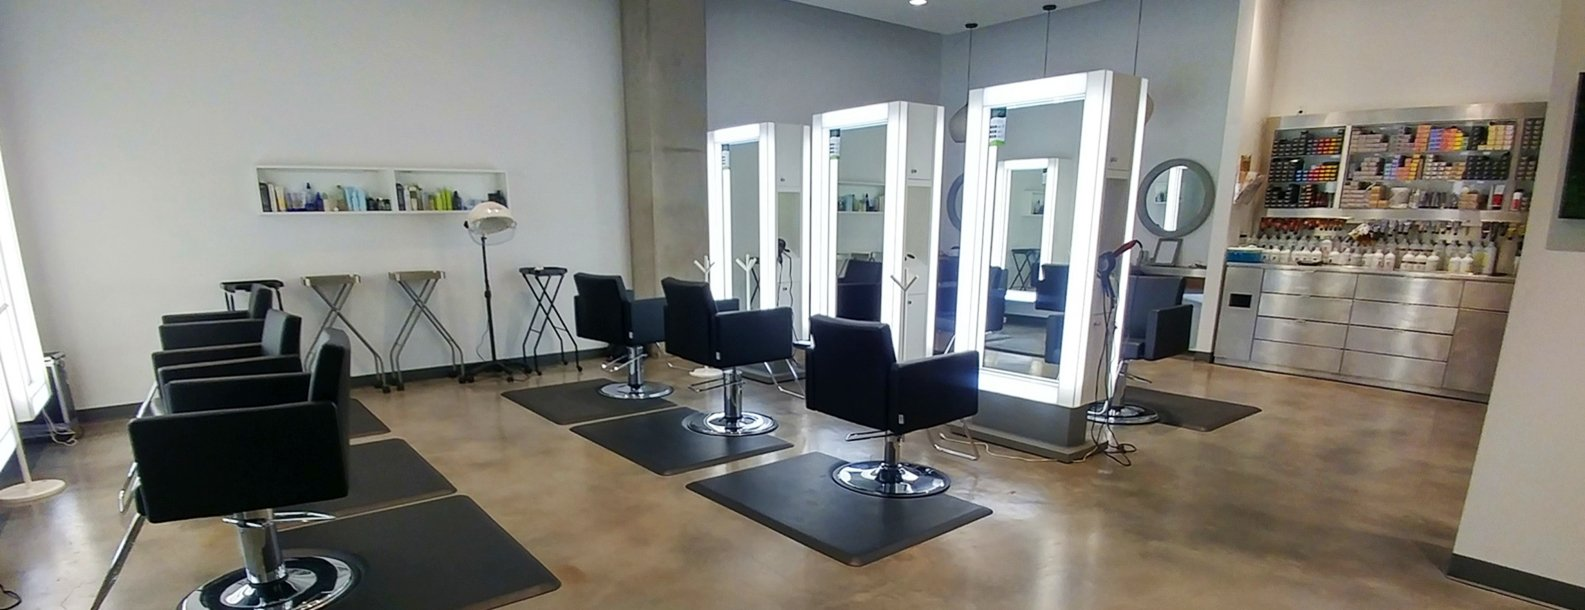 Hair Salons Near Me Open On Sunday - Image Of Hair Salon ...